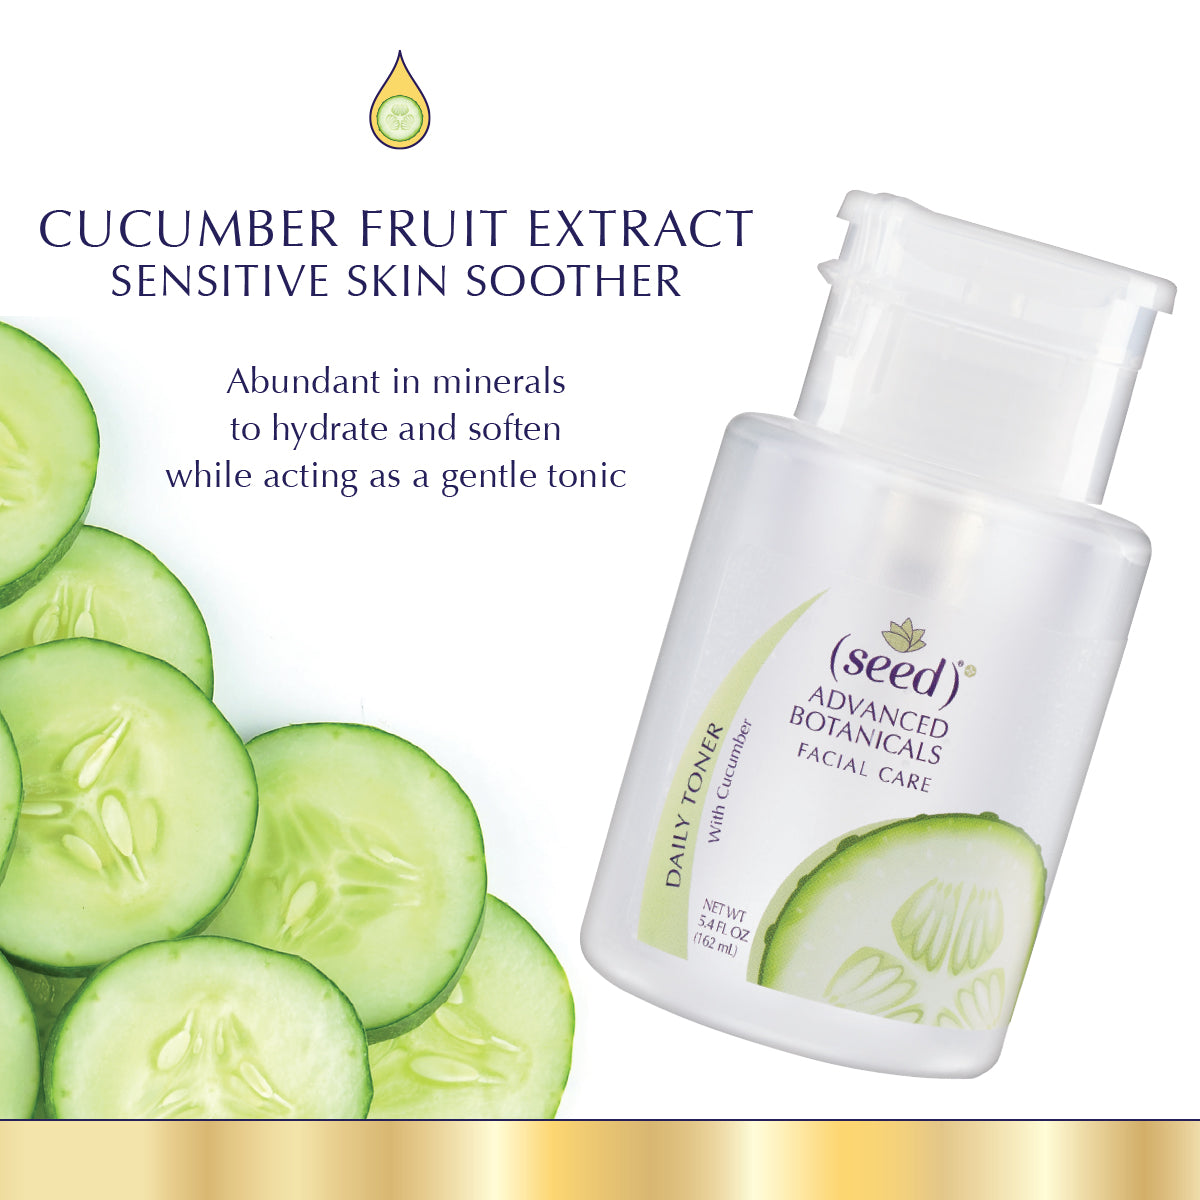 Seed Advanced Botanical Cucumber Face Toner features Cucumber Fruit Extract